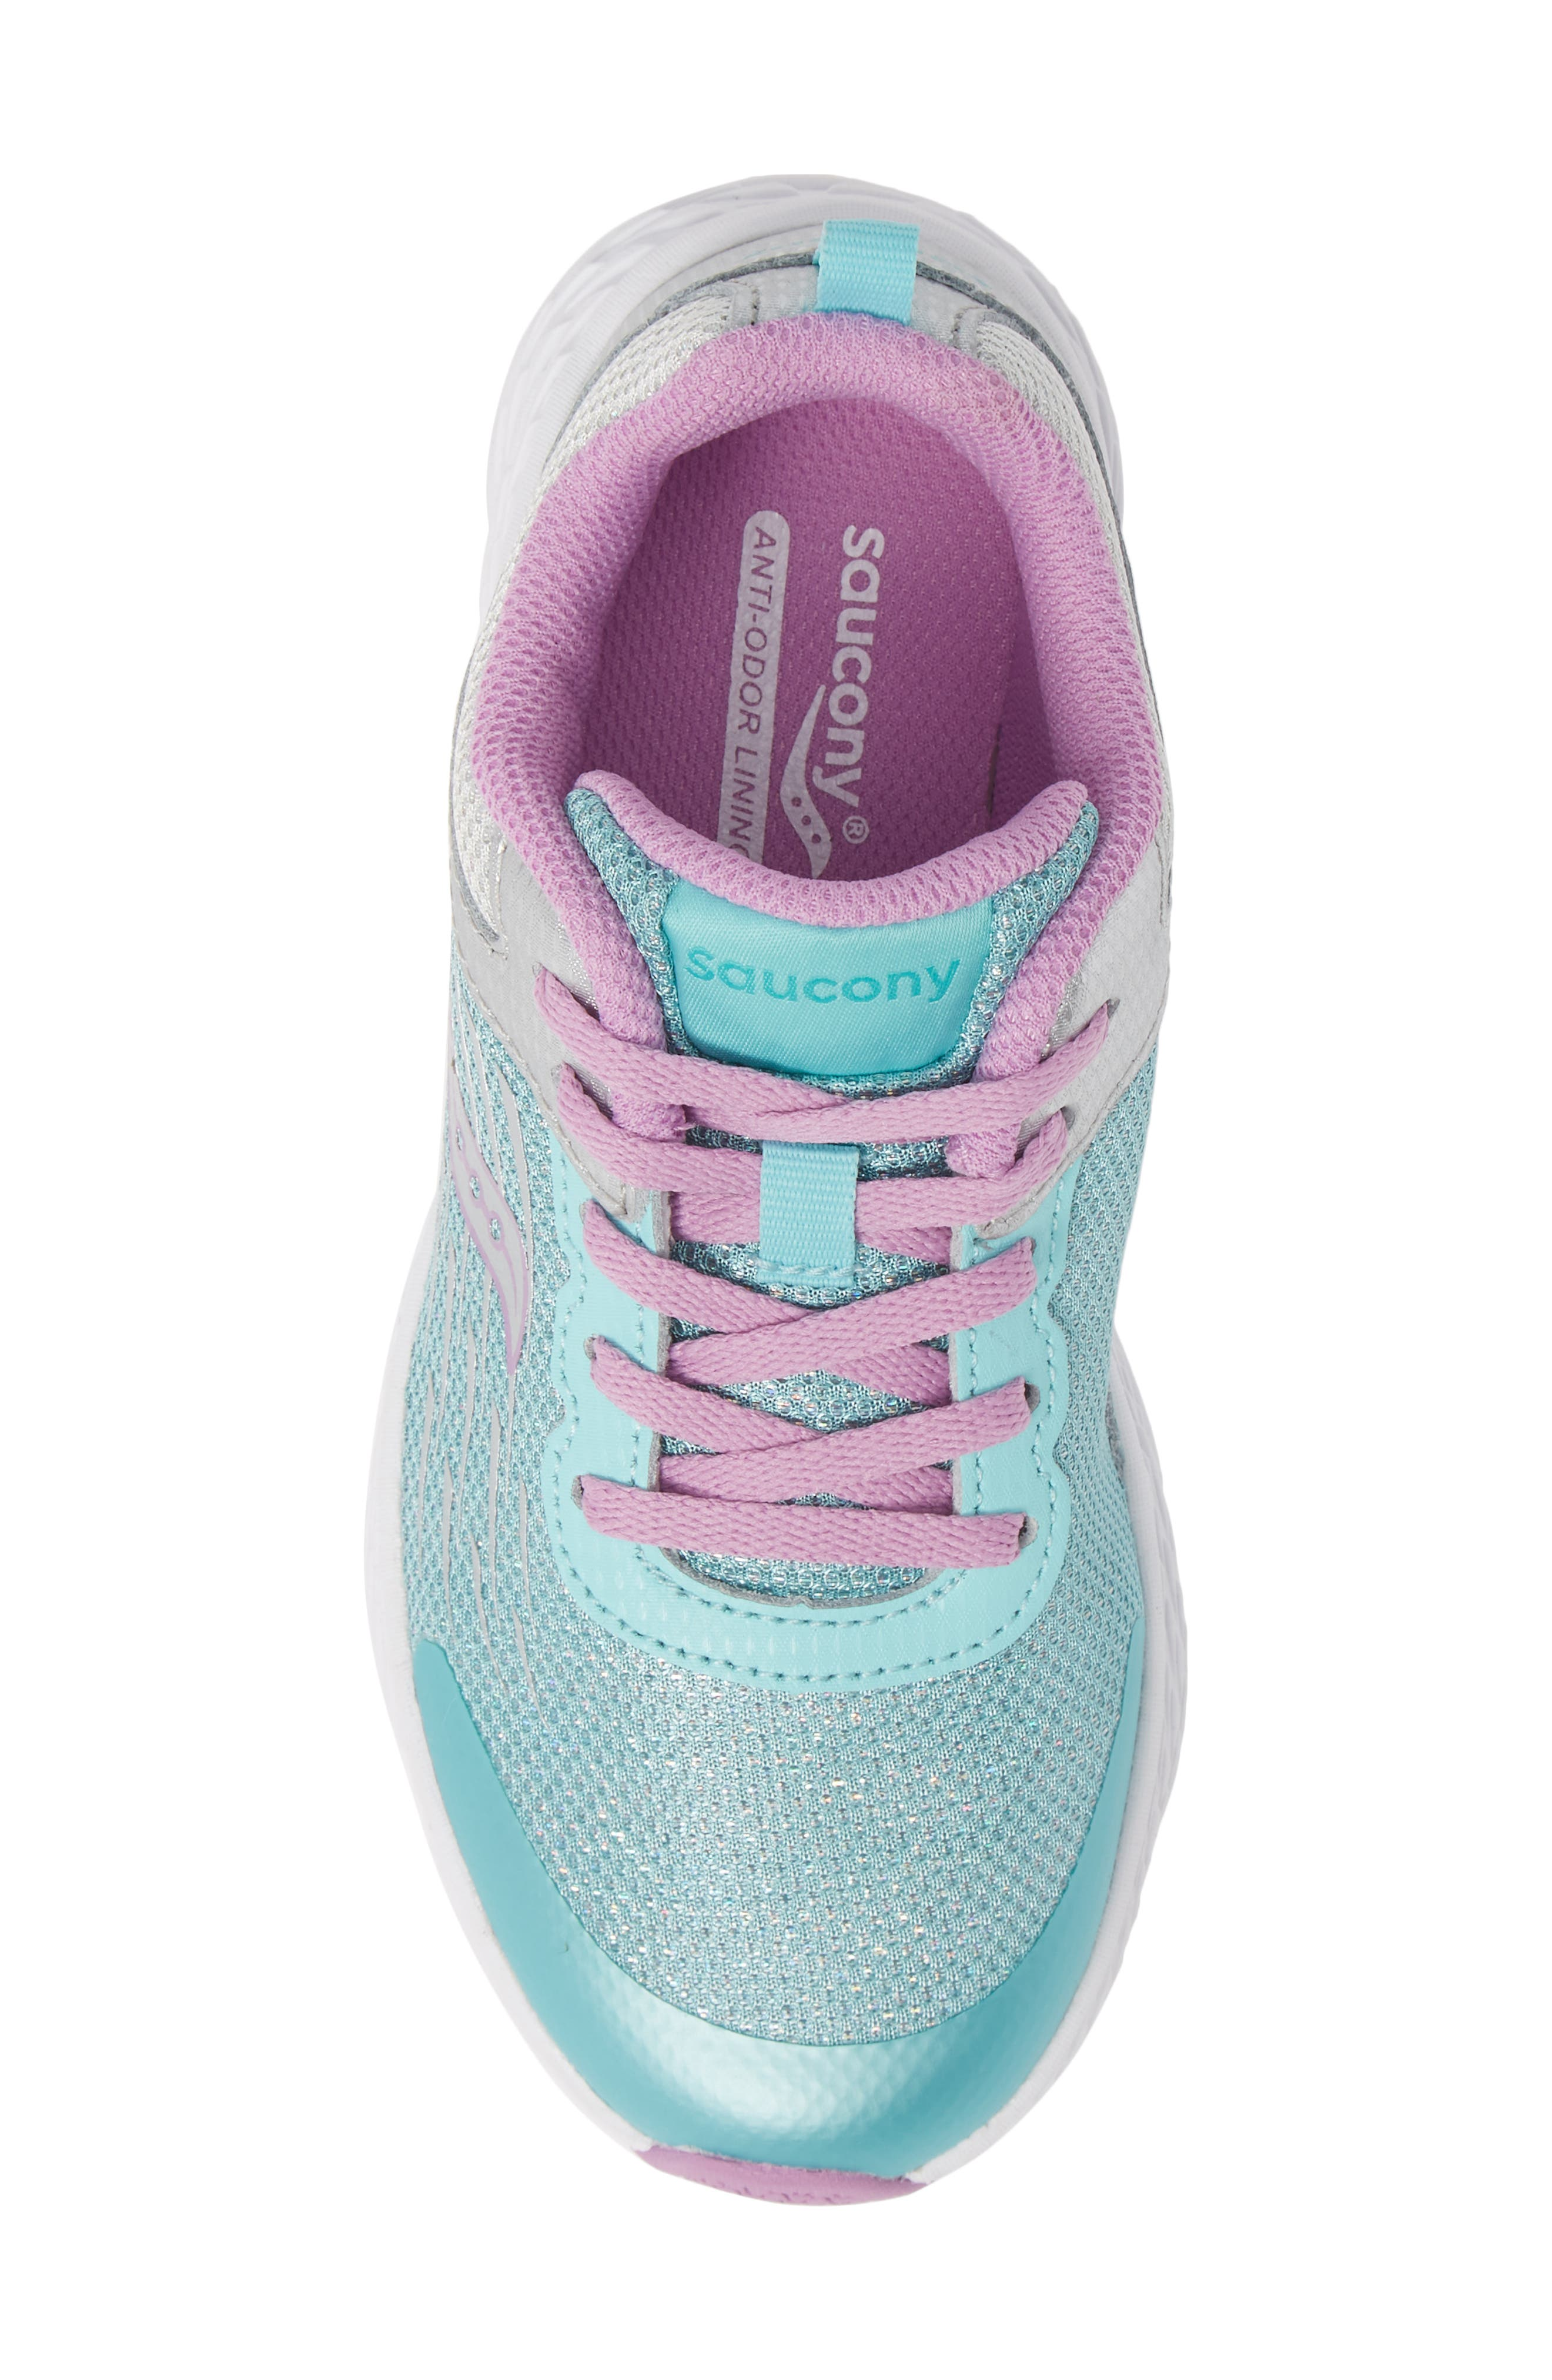 Wind Sneaker,                             Alternate thumbnail 5, color,                             TURQUOISE/ SILVER